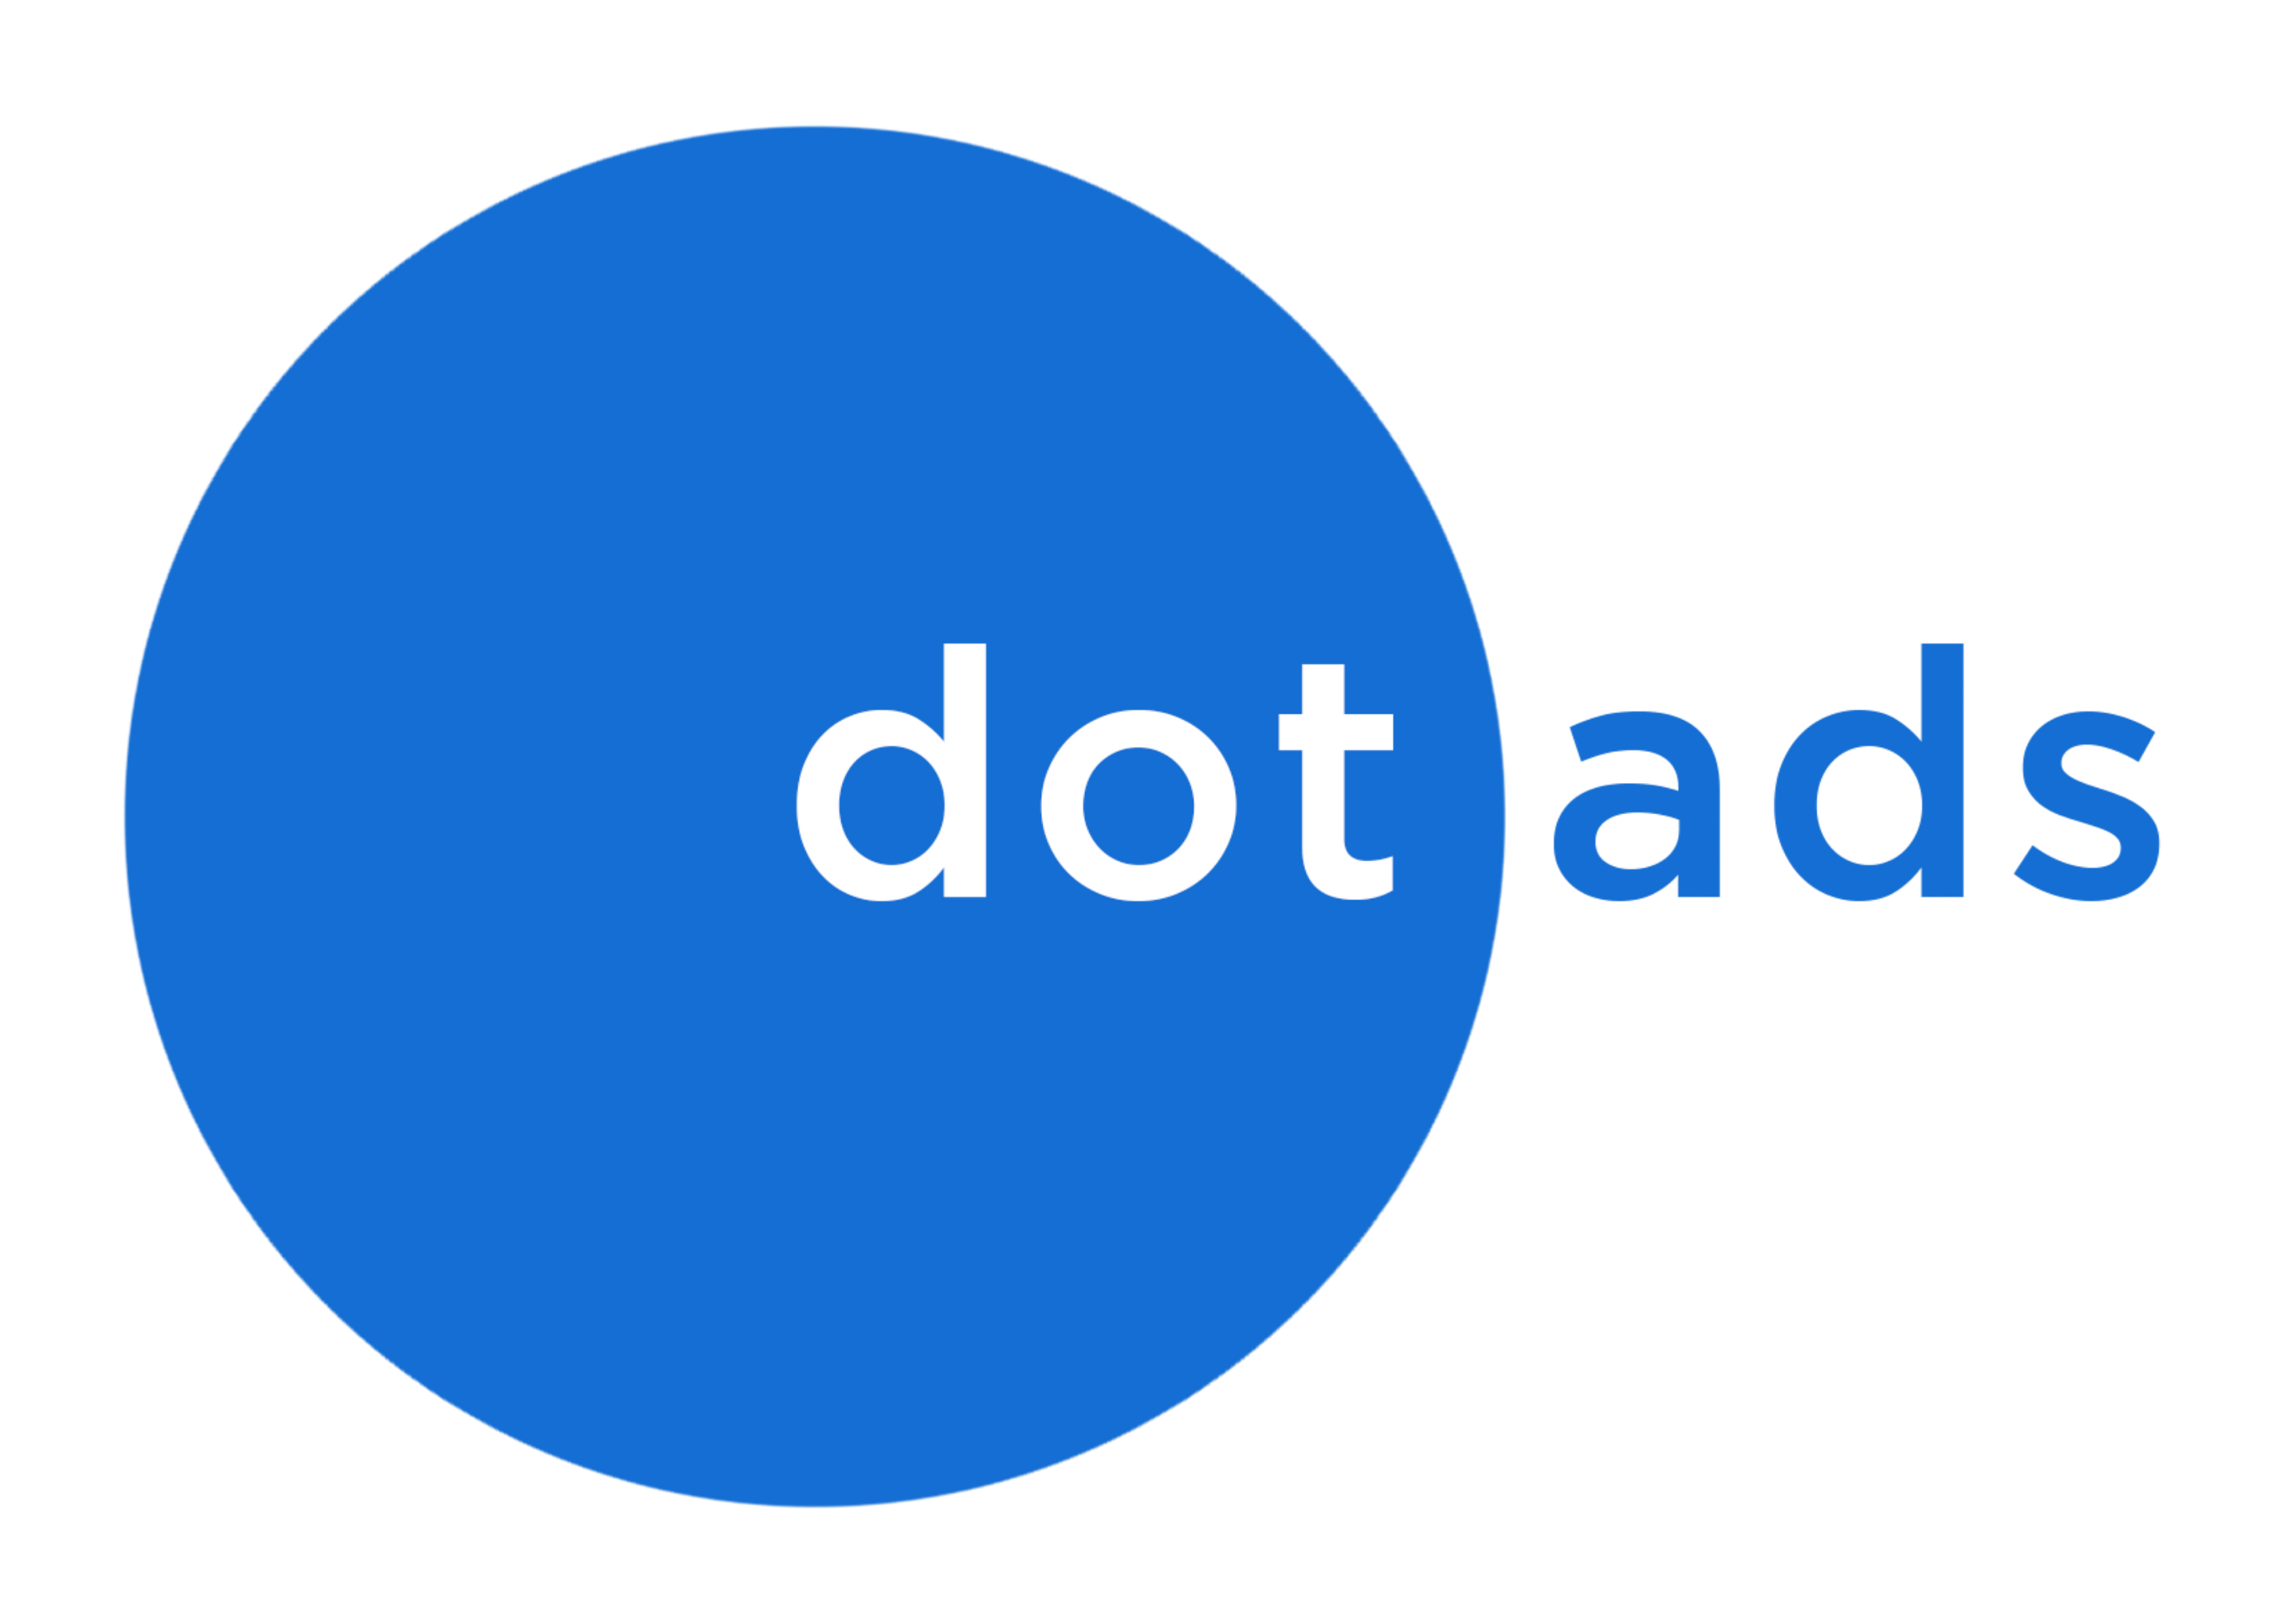 Dot Ads Digital